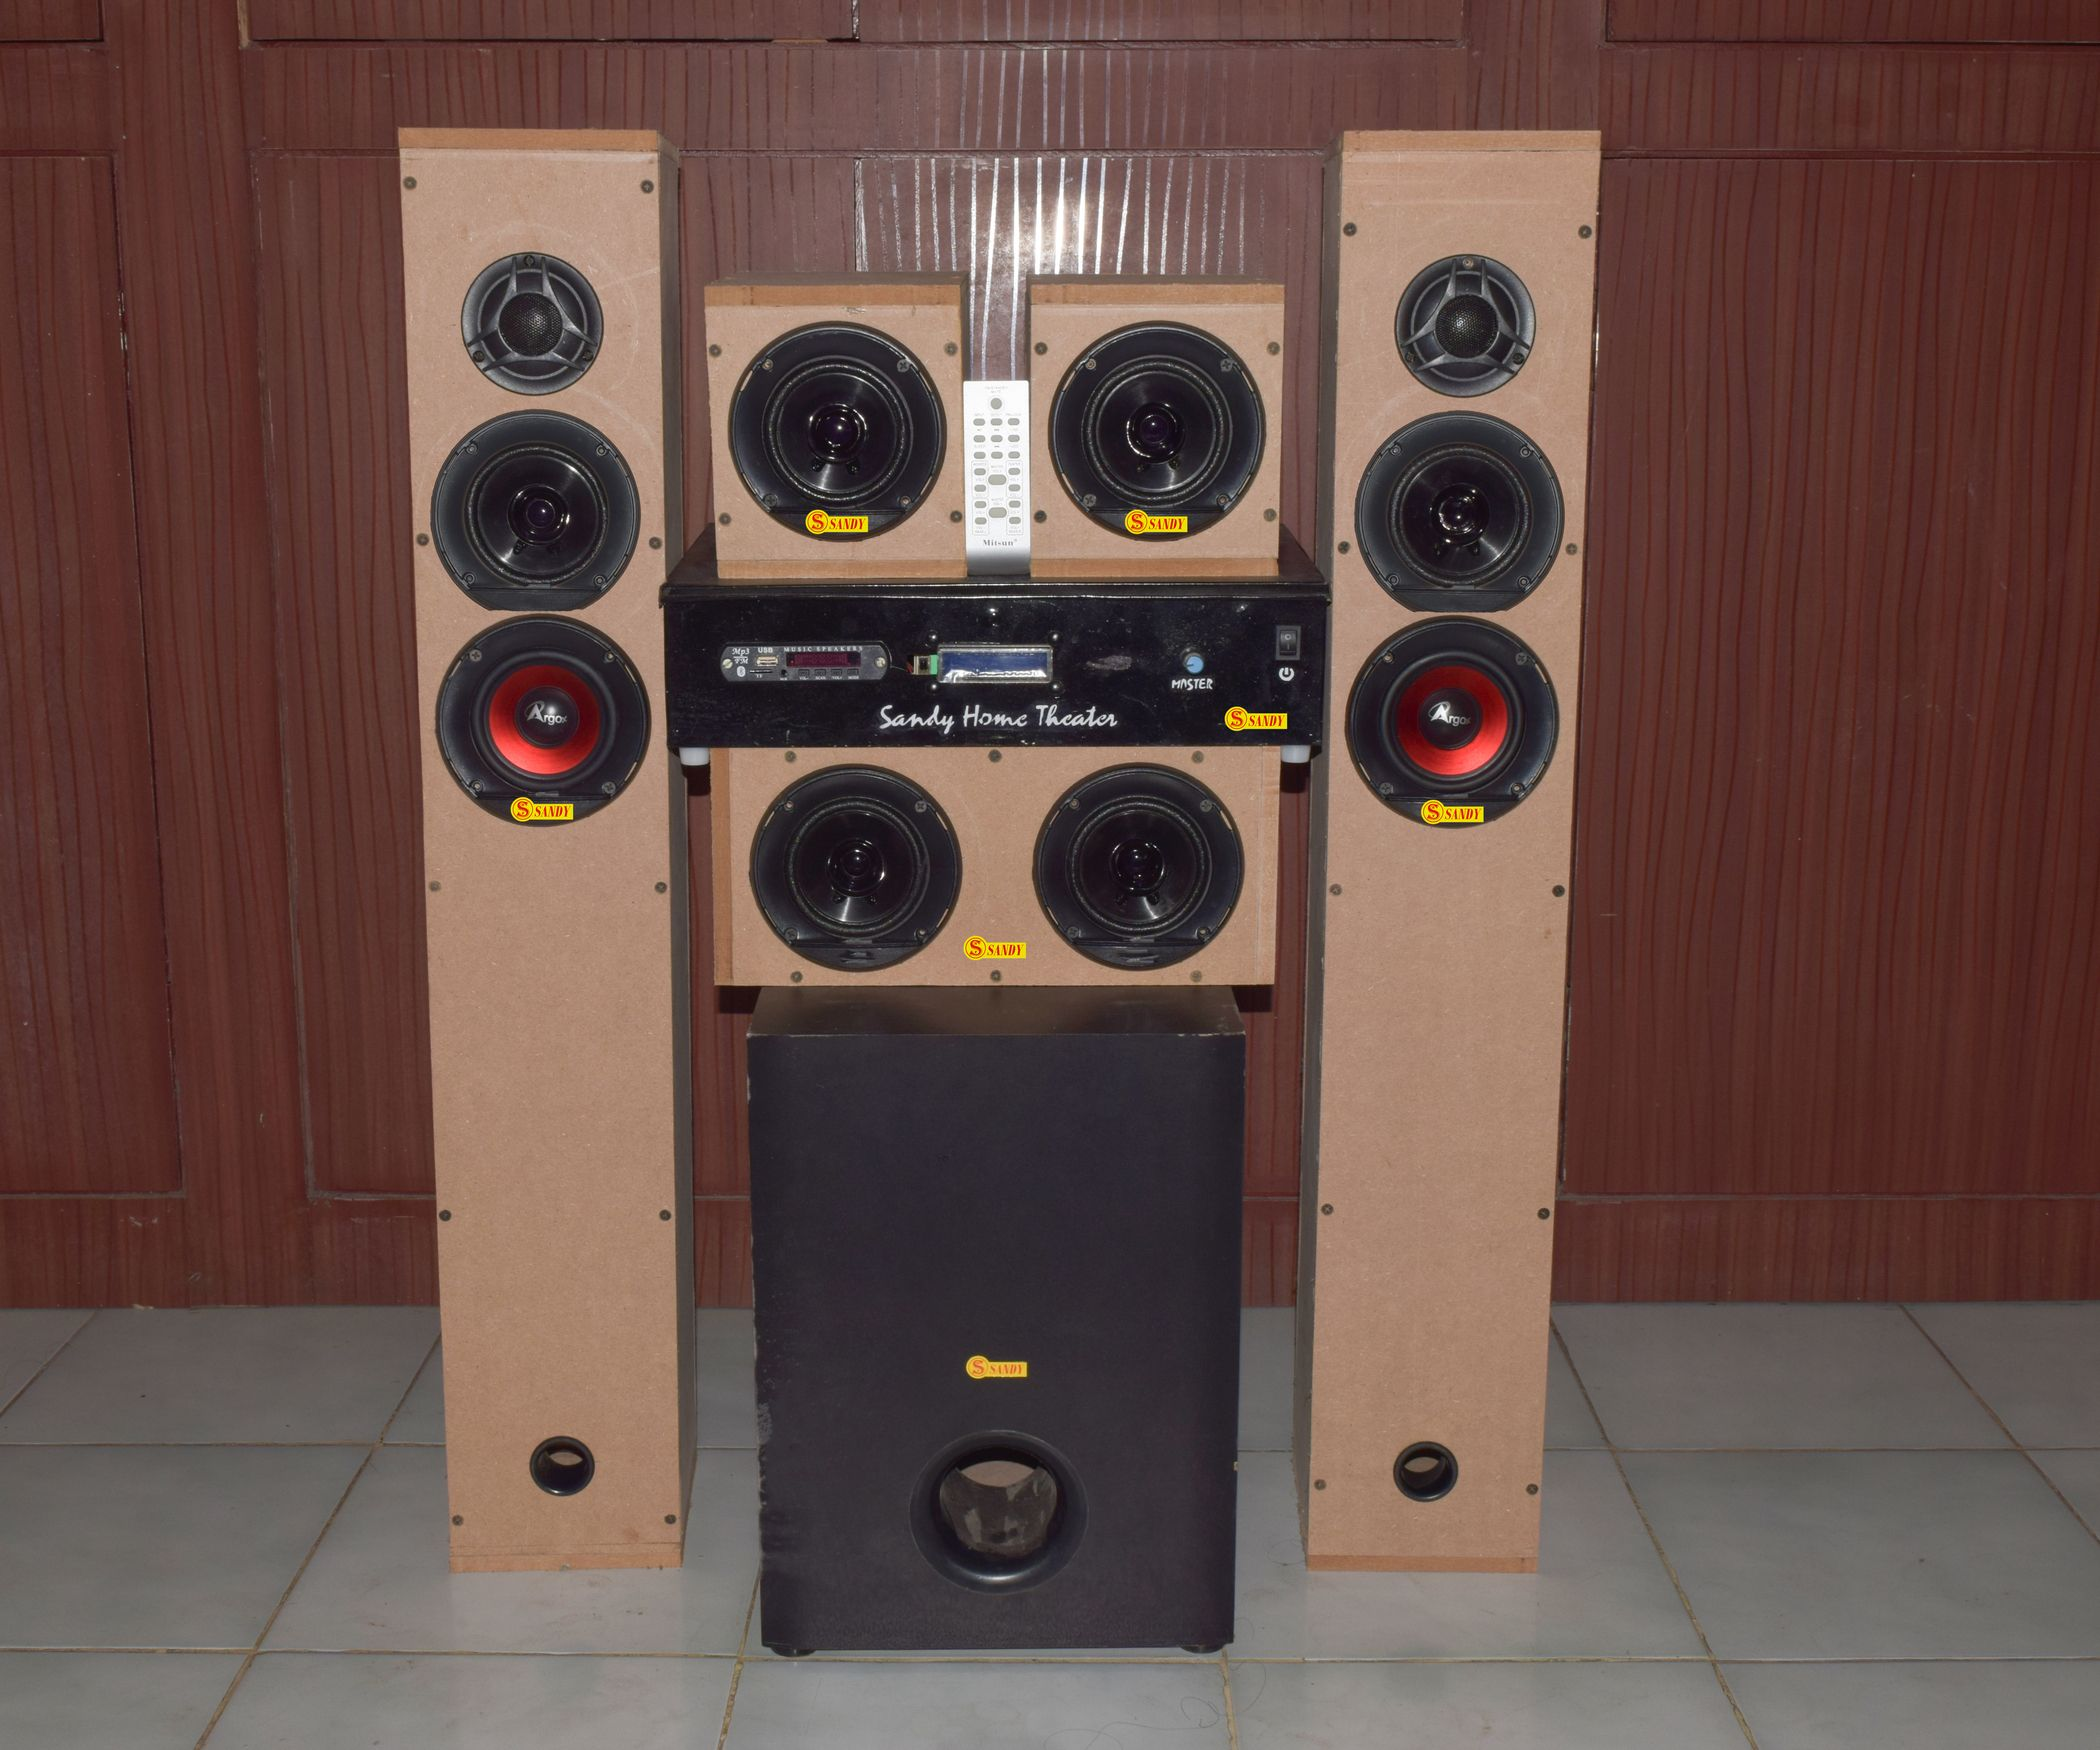 Diy 51 Home Theater System 700watt Rms Sound Projects Two Tone Alarm Generator Using Lm3900